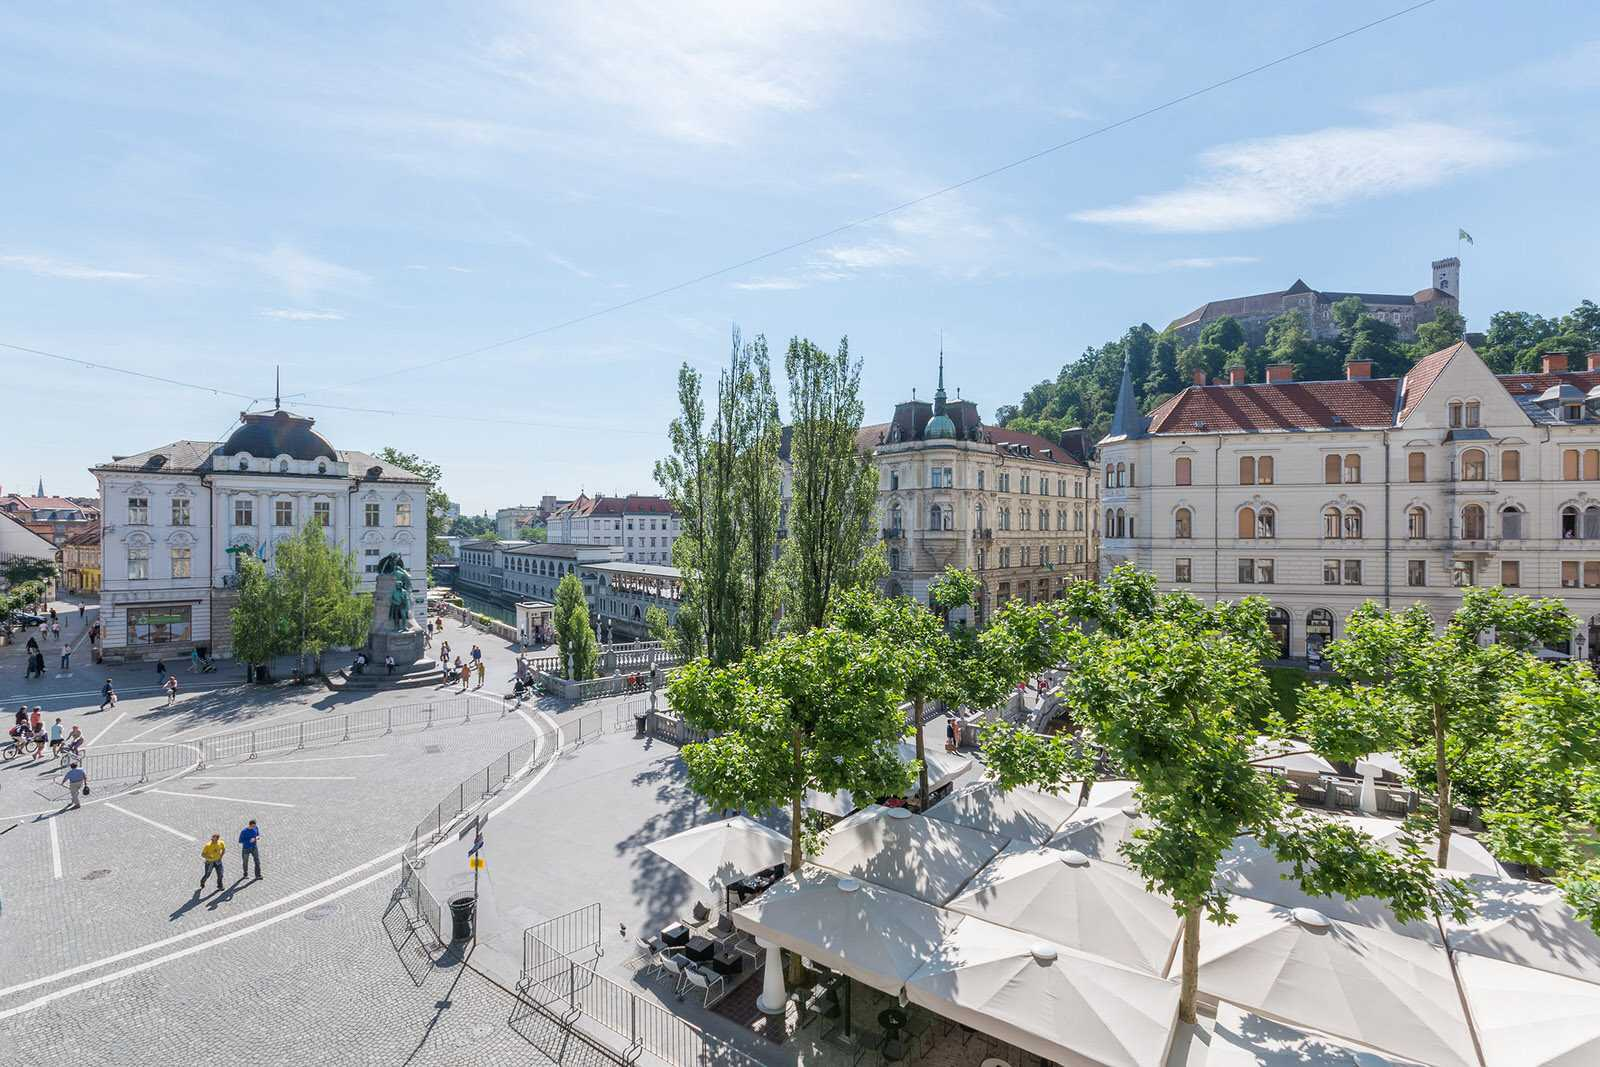 View of the Prešeren Square with the Ljubljana castle in the background